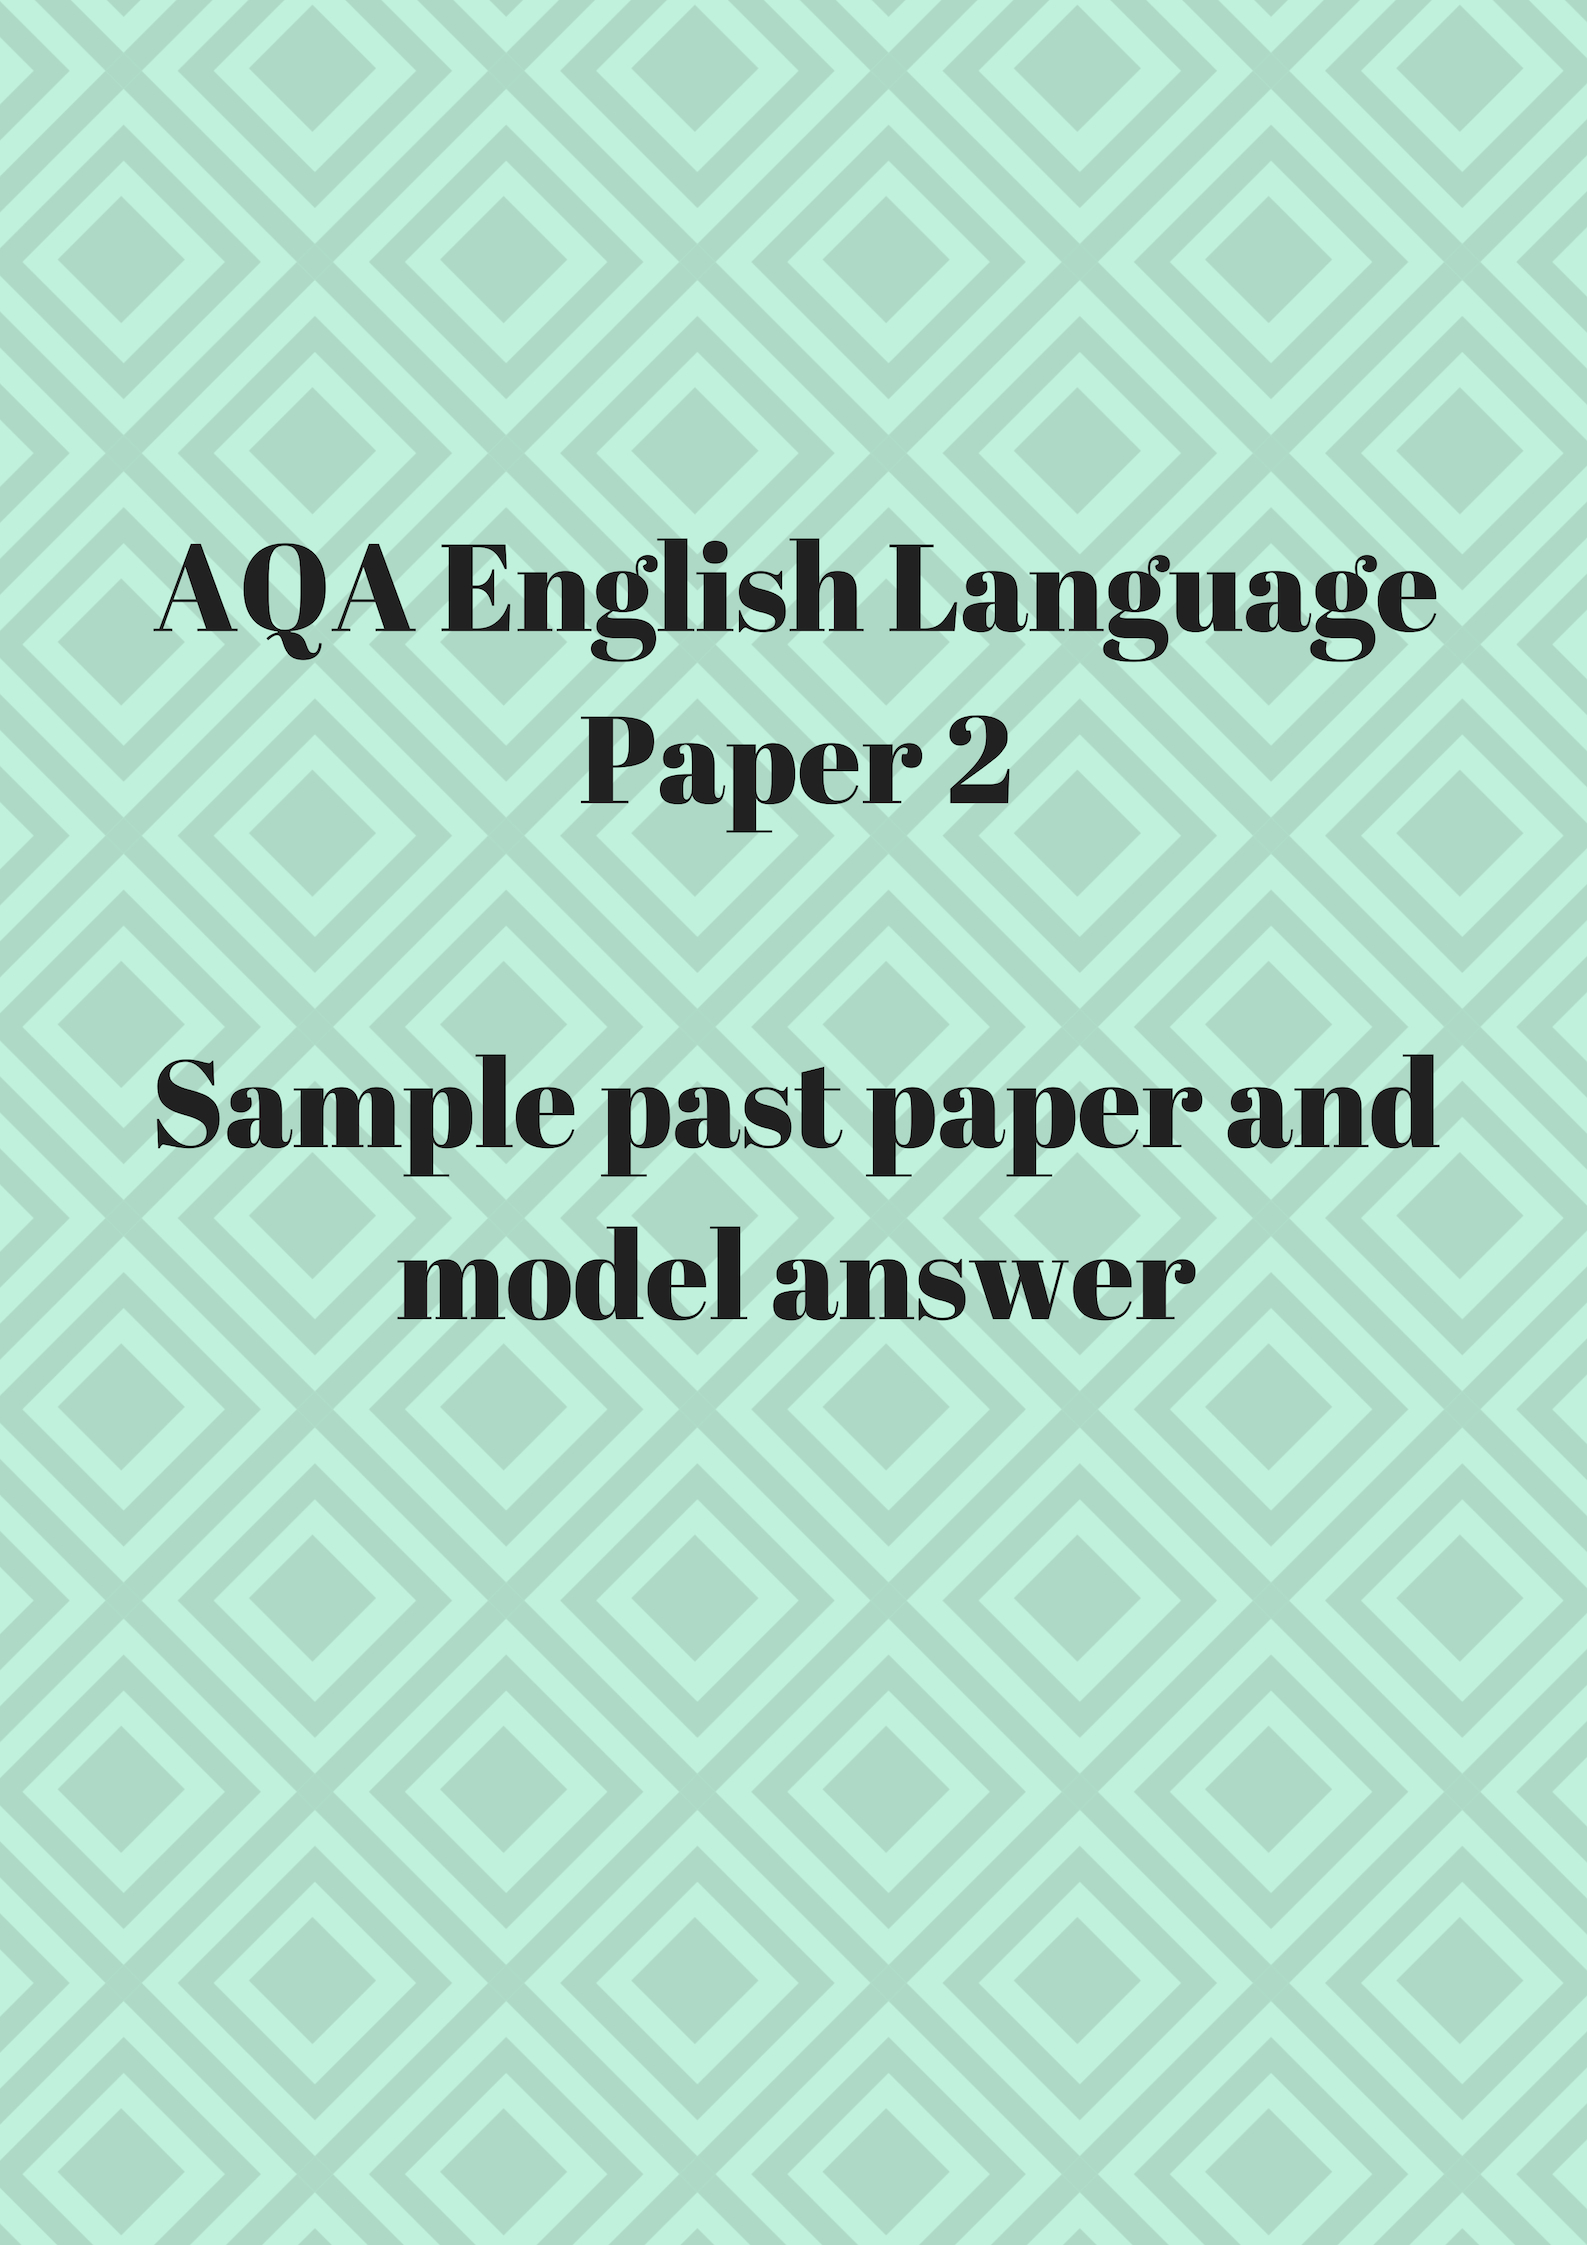 AQA English Language Paper 1Sample past paper and model answer-2.jpg